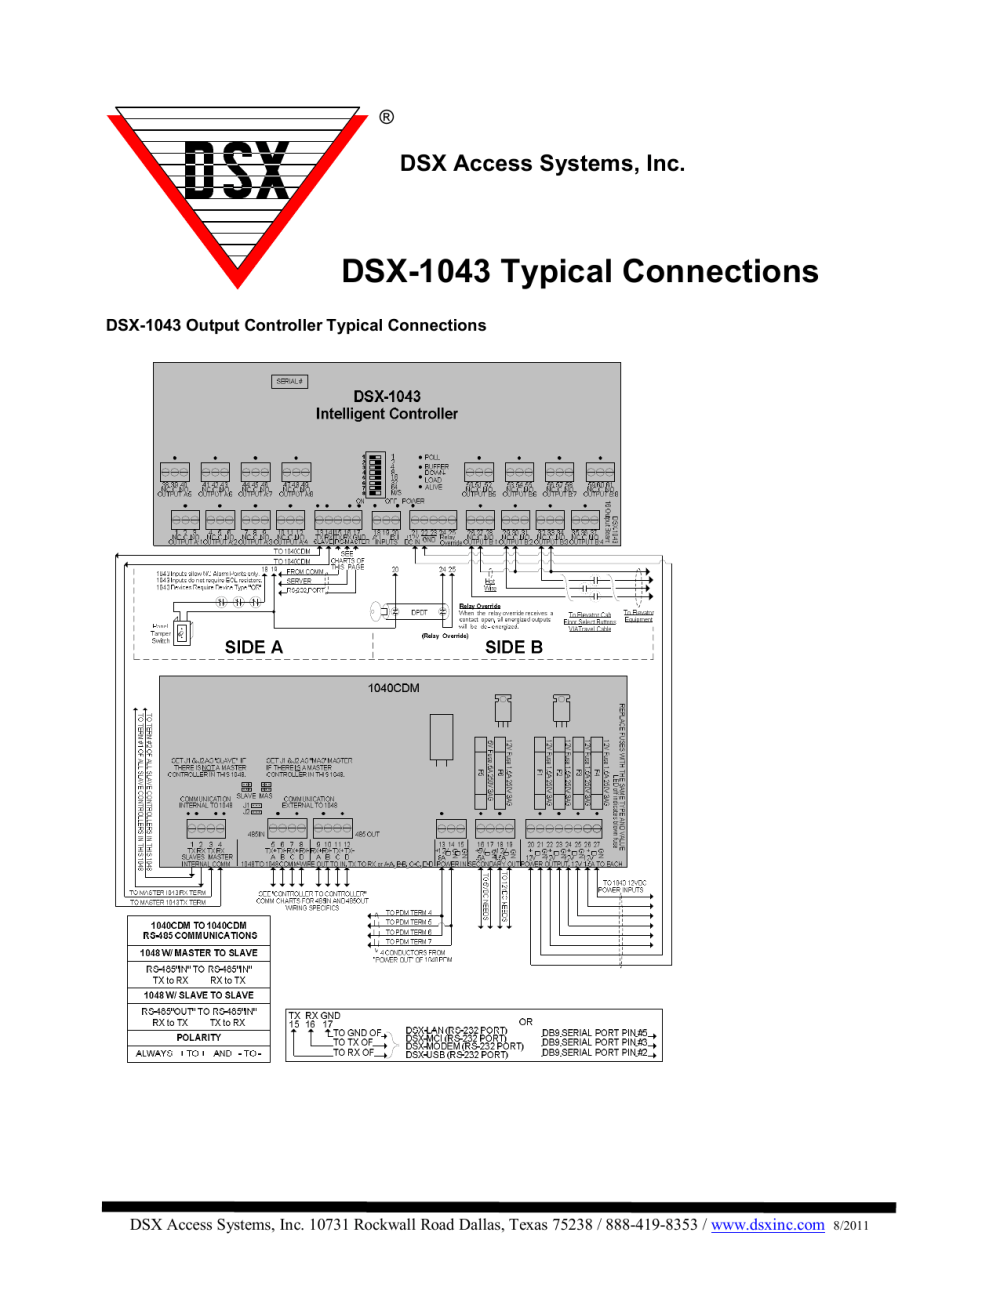 medium resolution of dsx 1048 wiring diagram wiring diagram paperdsx 1048 wiring diagram wiring library dsx 1043 typical connections